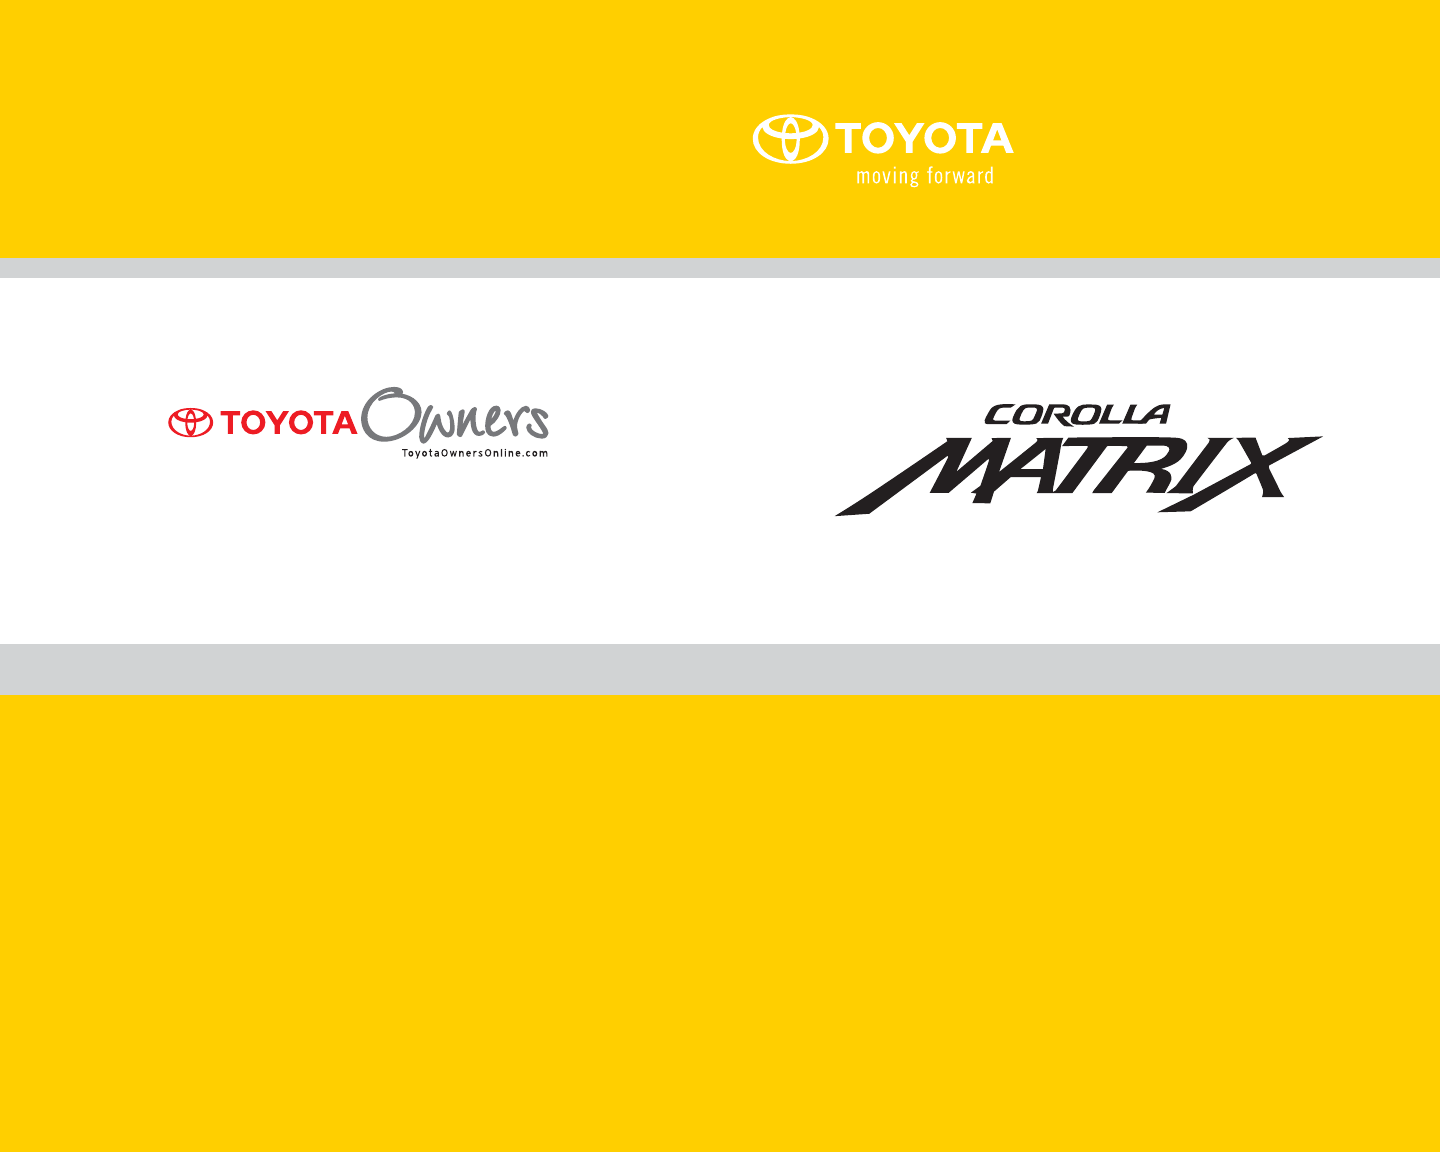 2009 toyota matrix owners manual pdf rh manuals co 2009 Toyota Matrix Review 2009 Toyota Matrix Problems